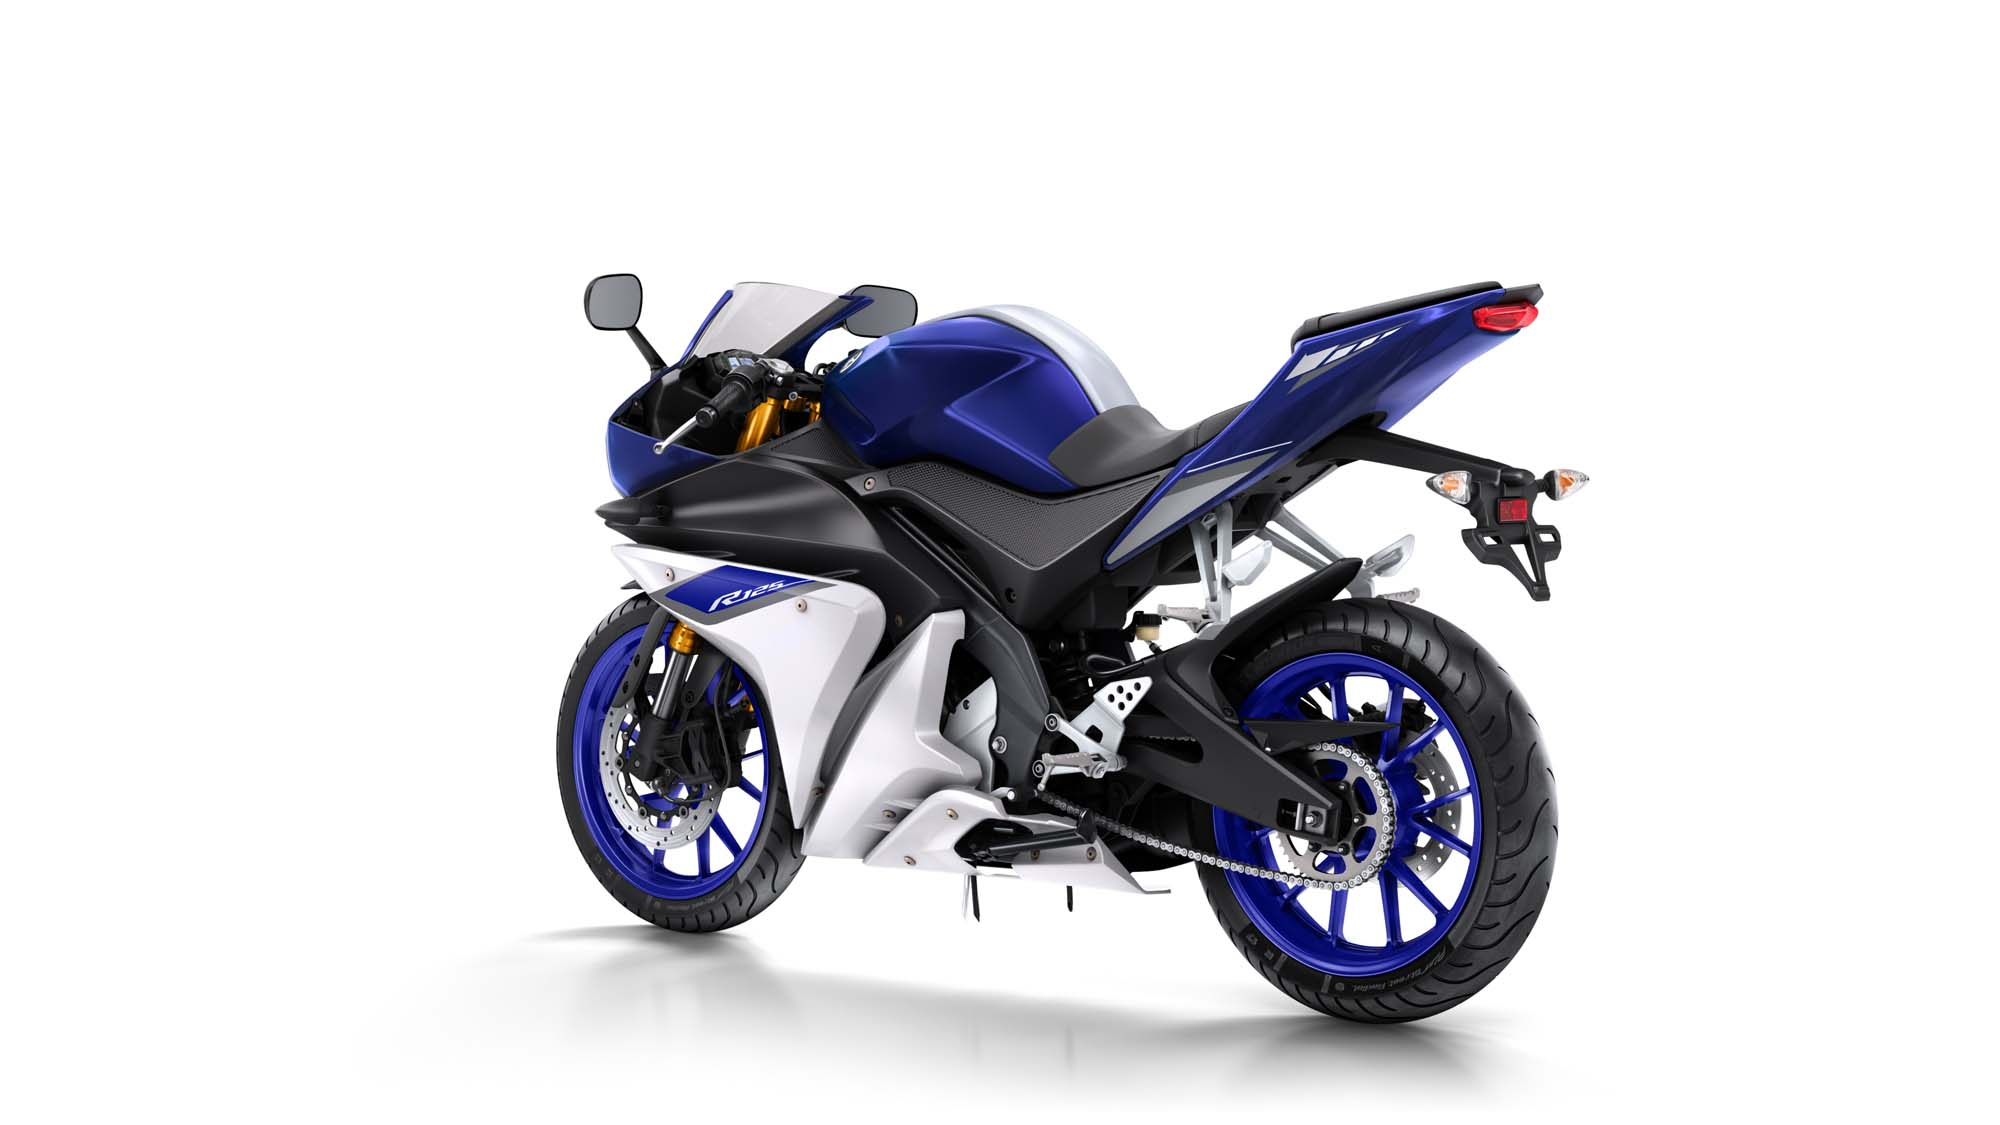 yamaha yzf r125 bilder und technische daten. Black Bedroom Furniture Sets. Home Design Ideas